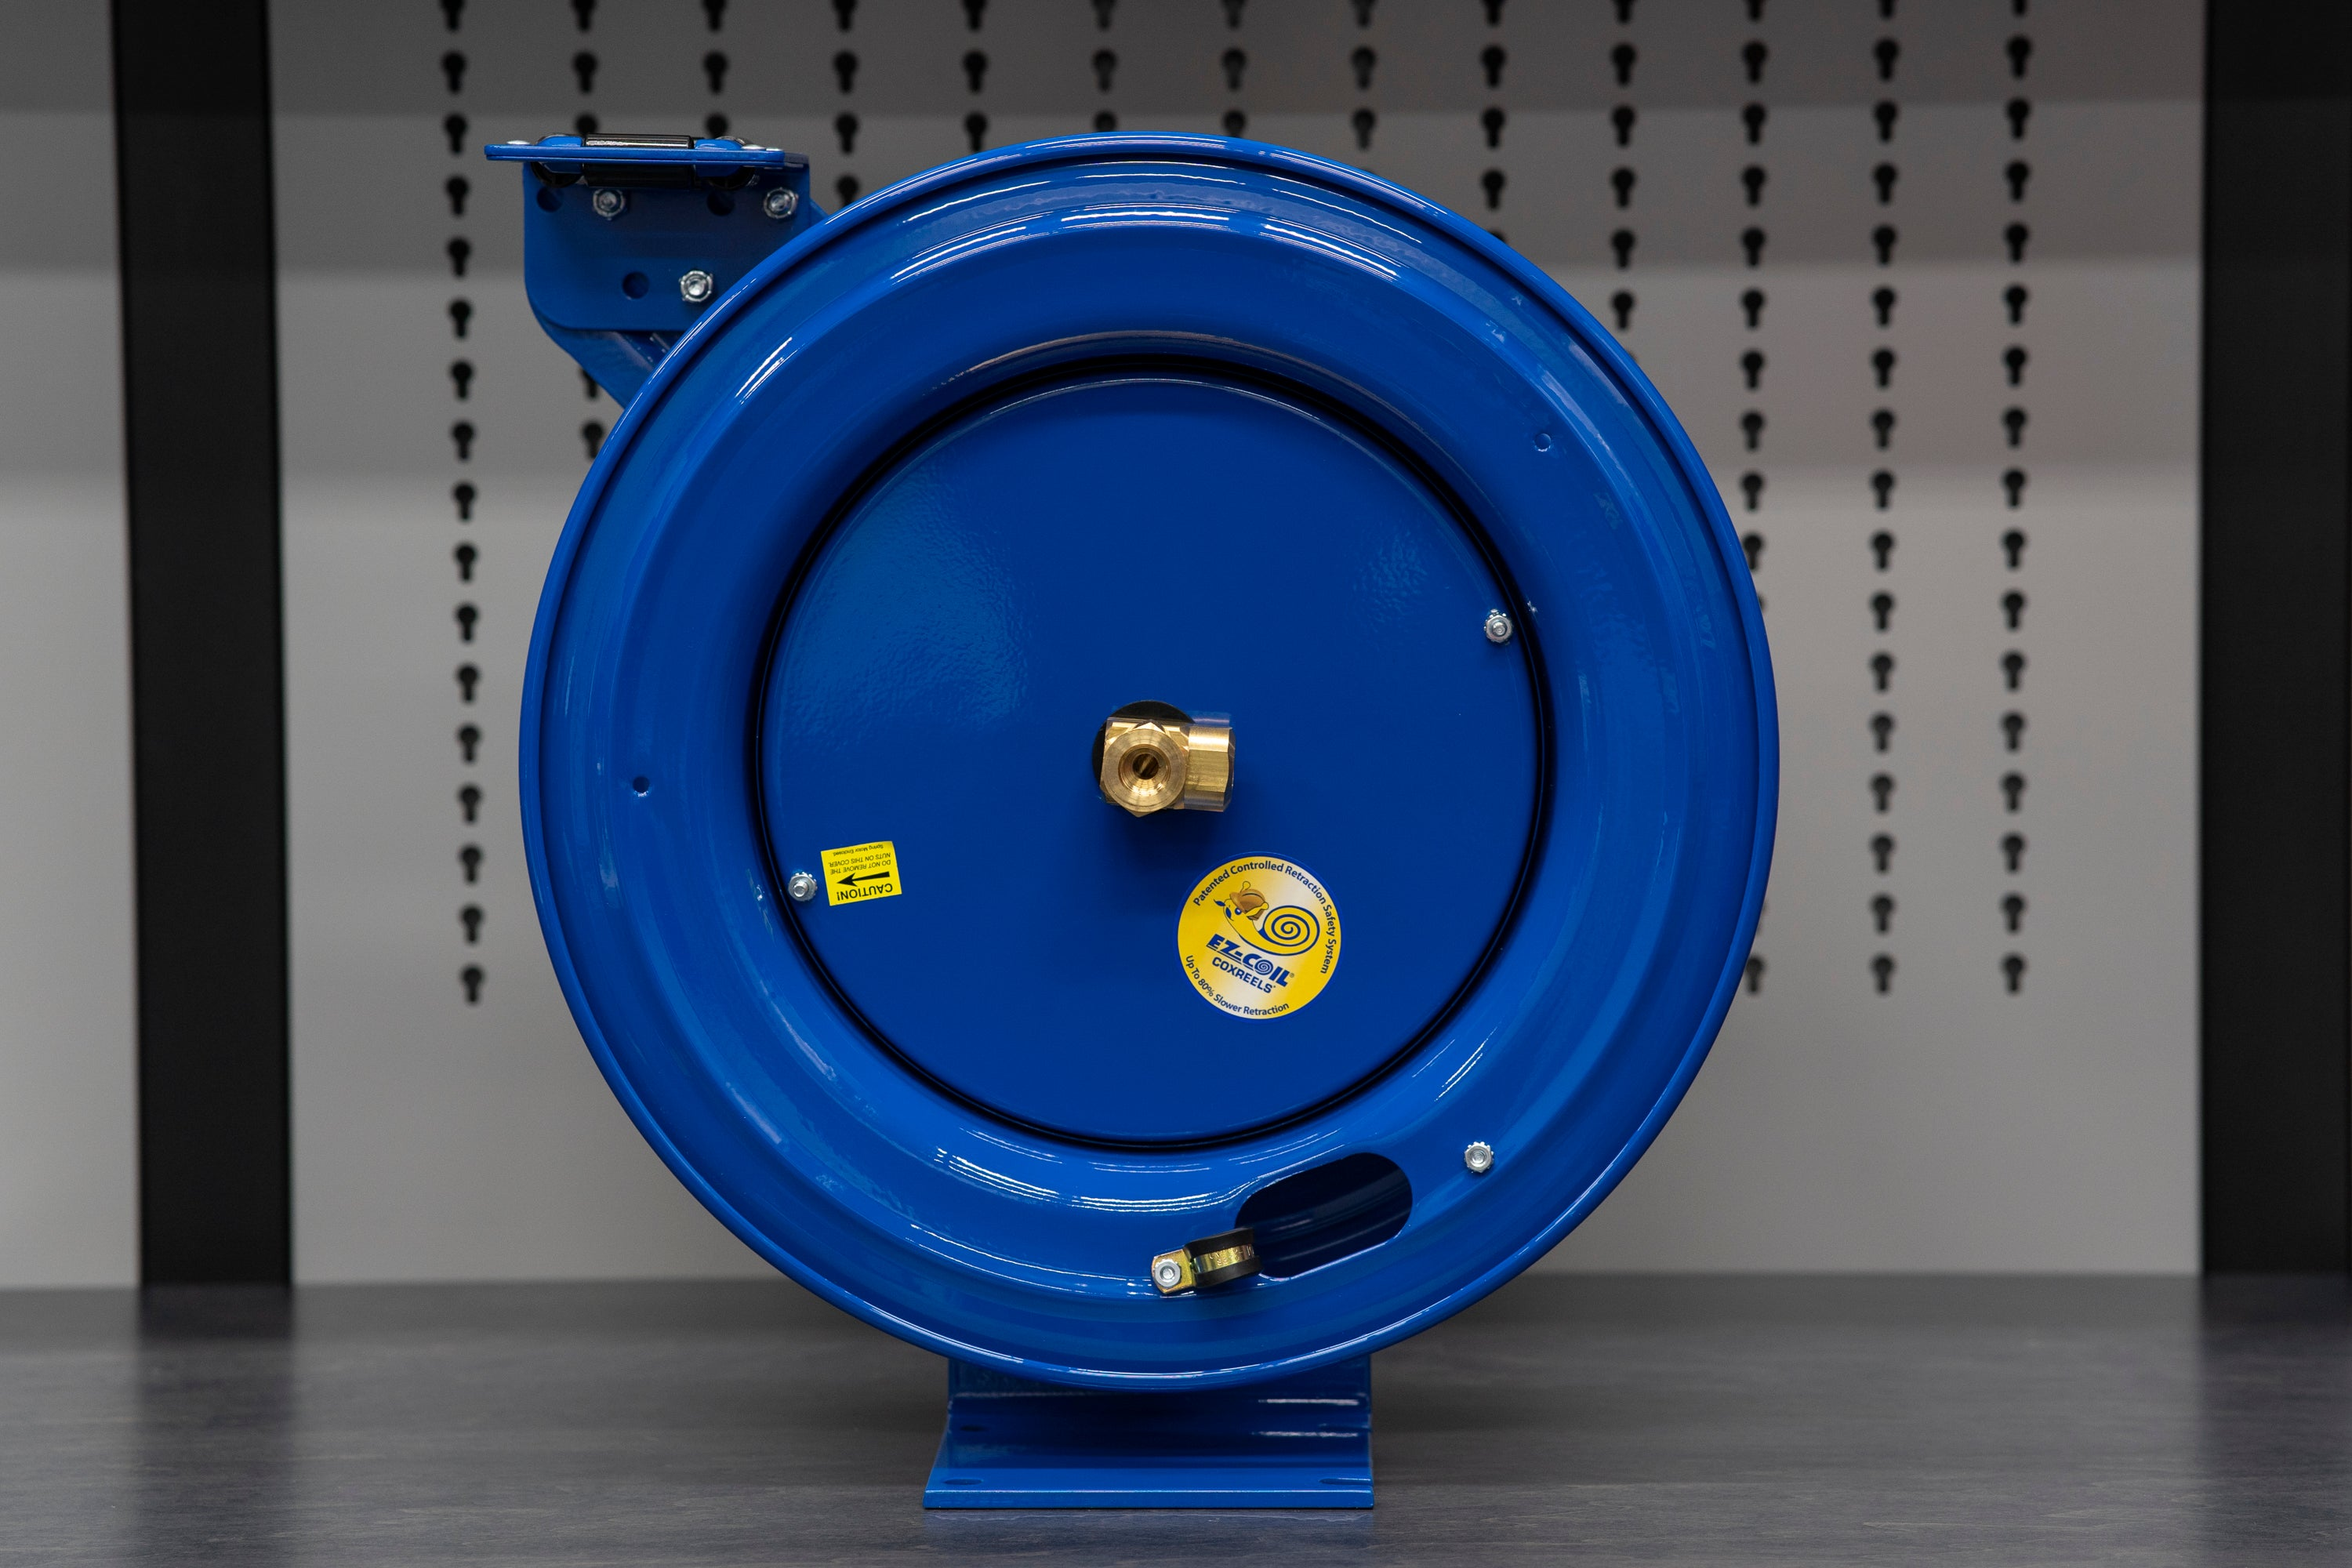 Custom Coxreels Air Hose Reel (No Hose)